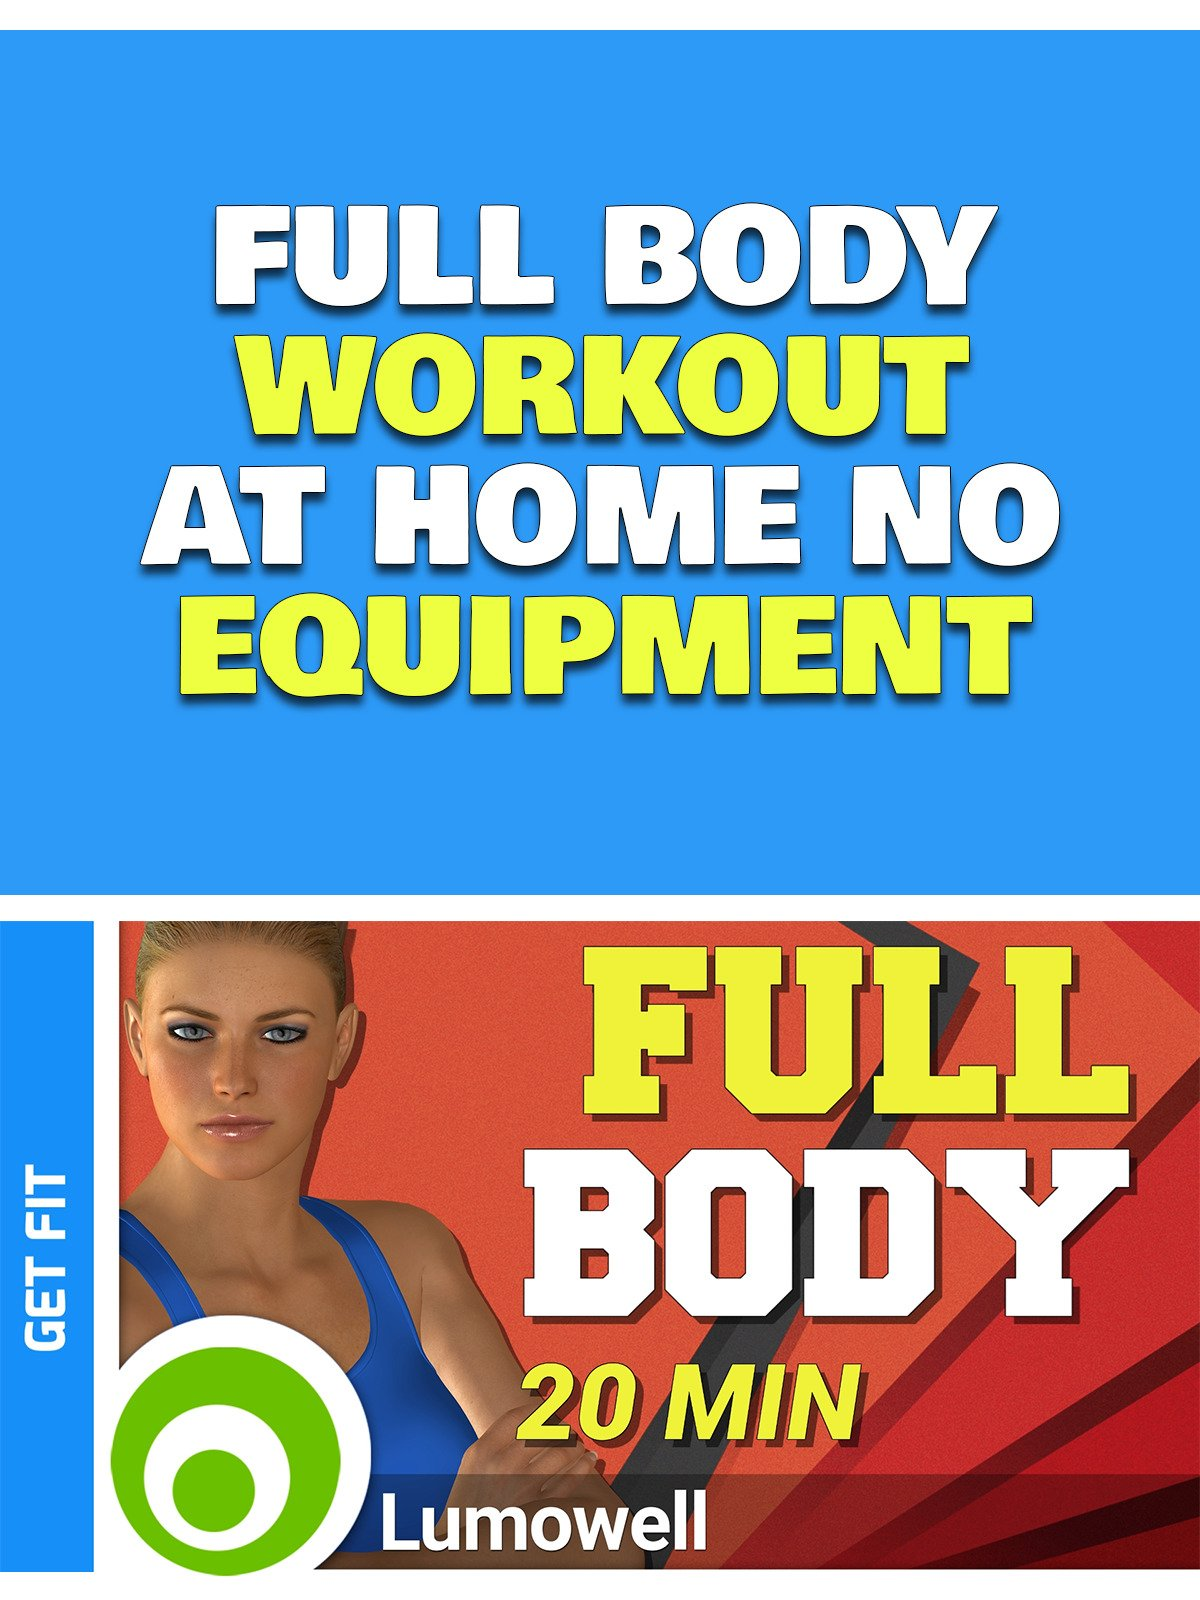 Full Body Workout at Home no Equipment on Amazon Prime Instant Video UK